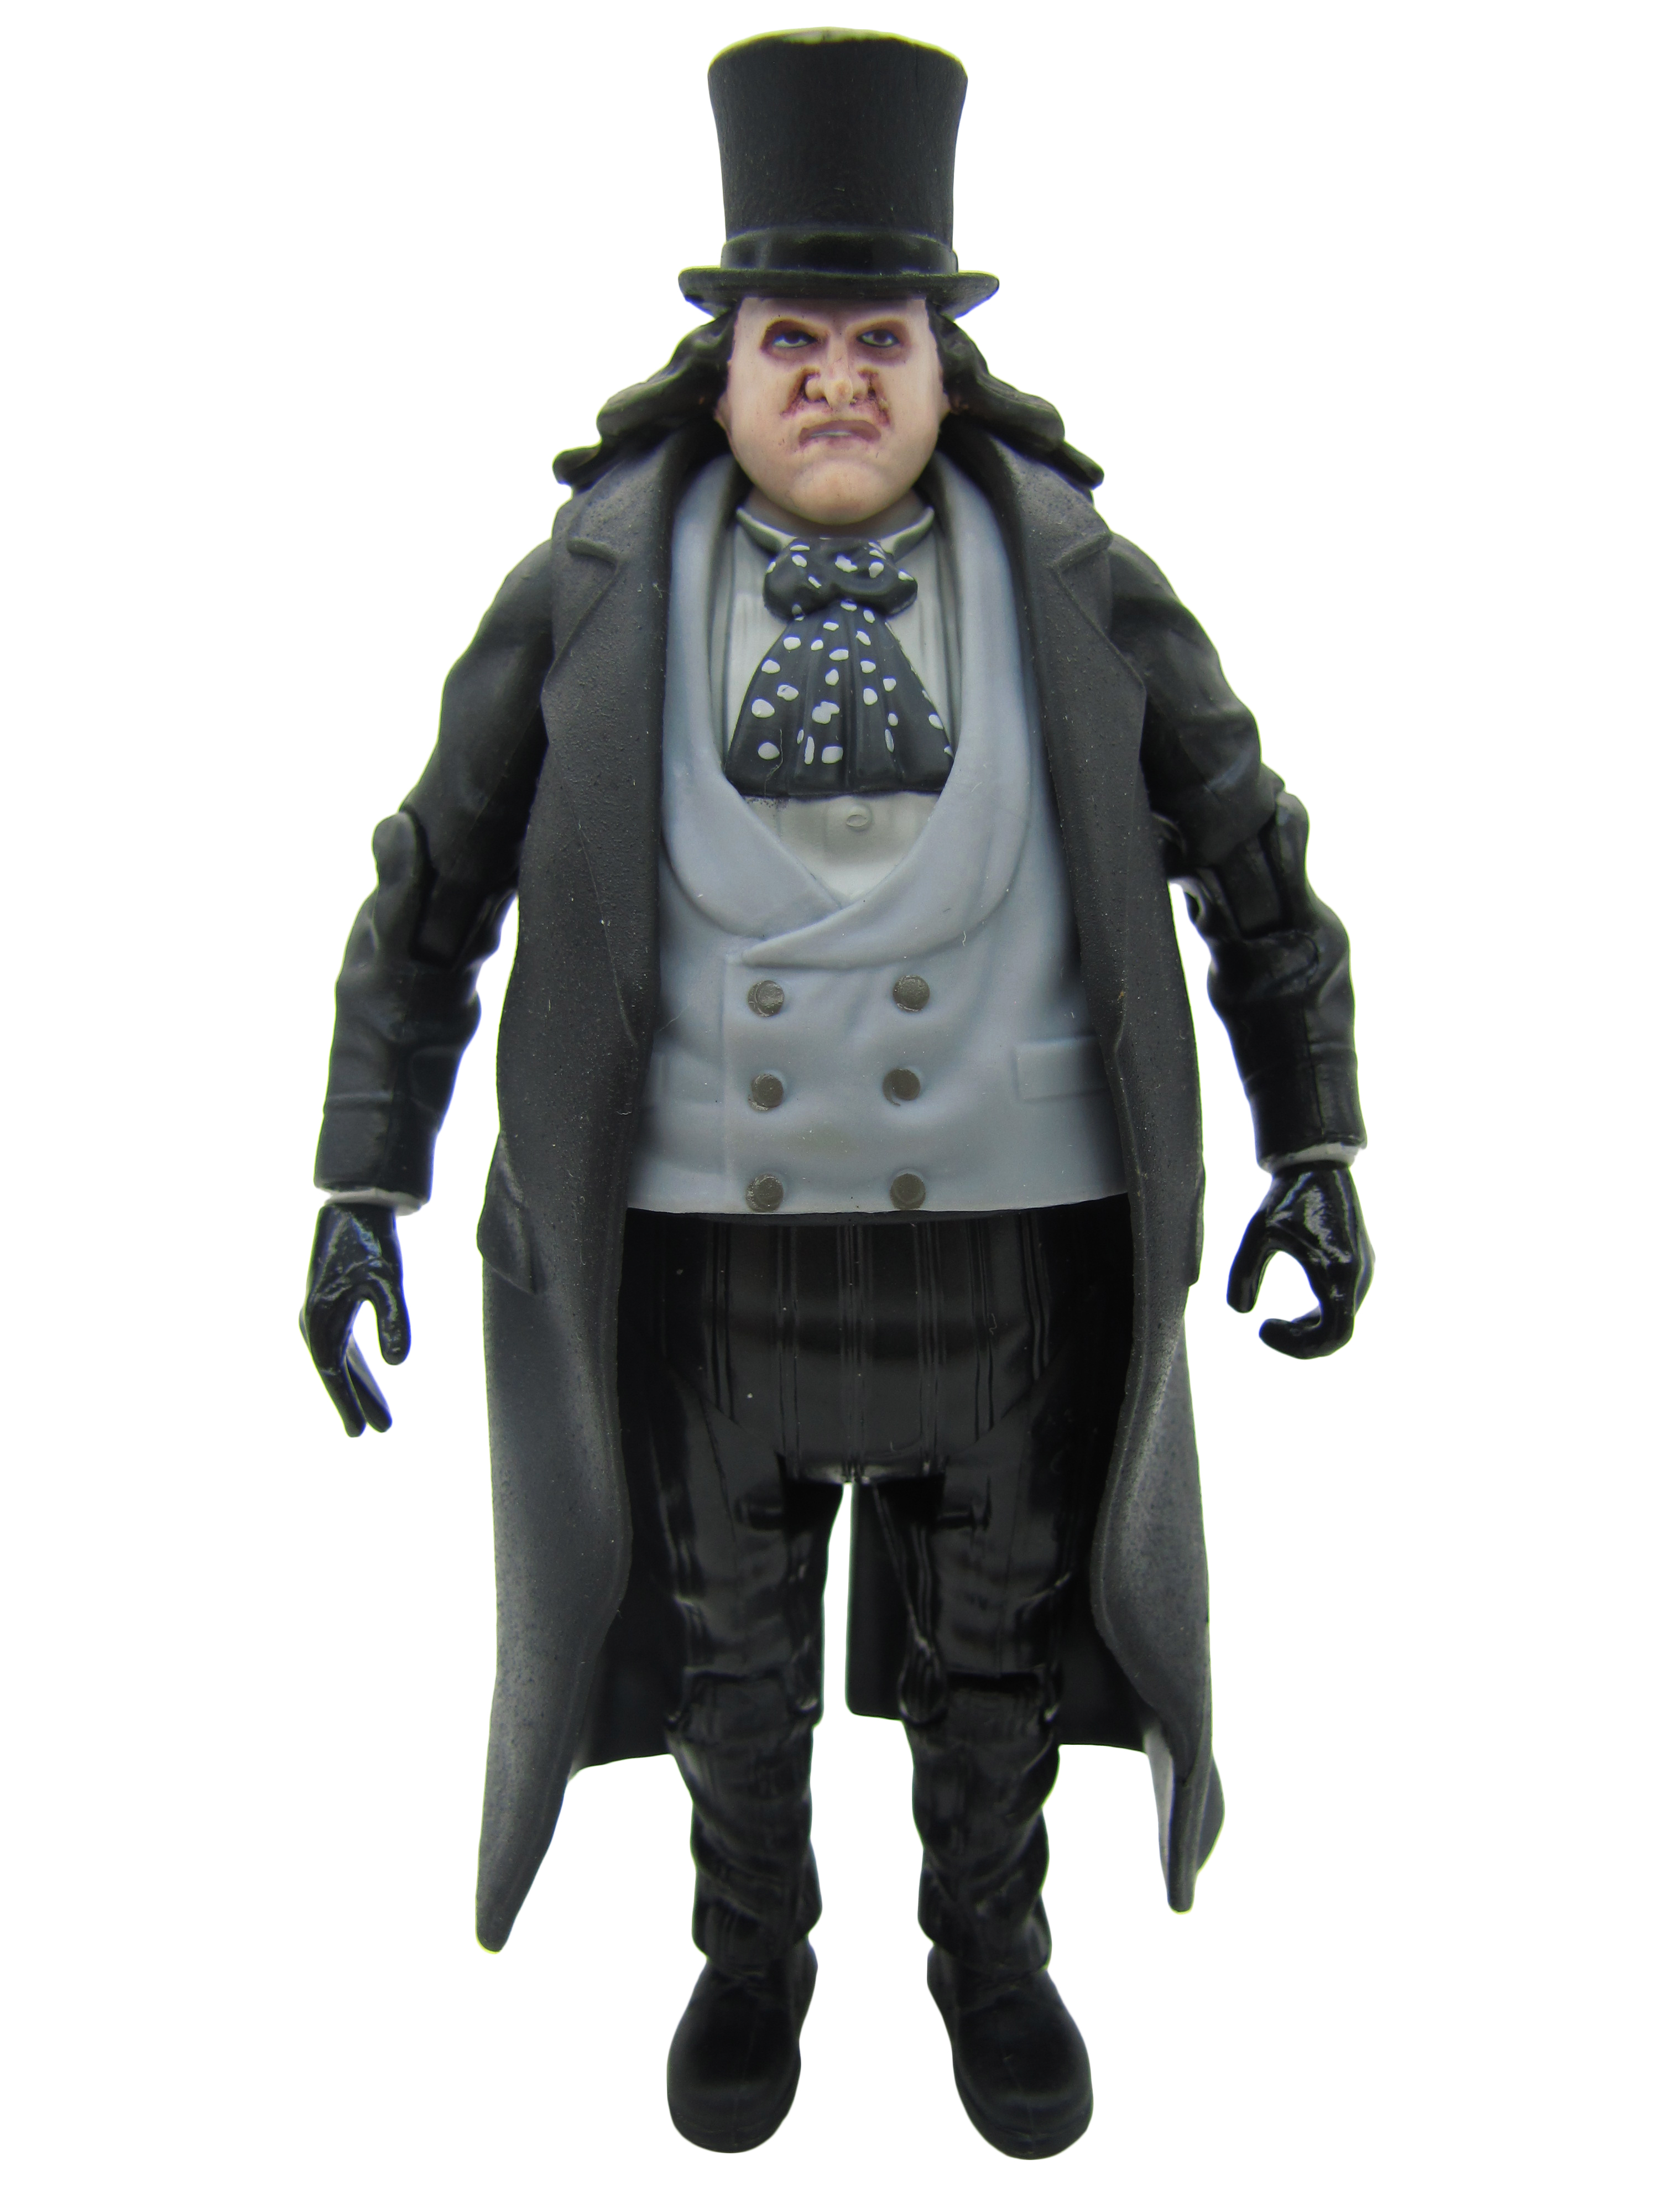 2014 Mattel DC Comics Multiverse Batman Returns PENGUIN Mint